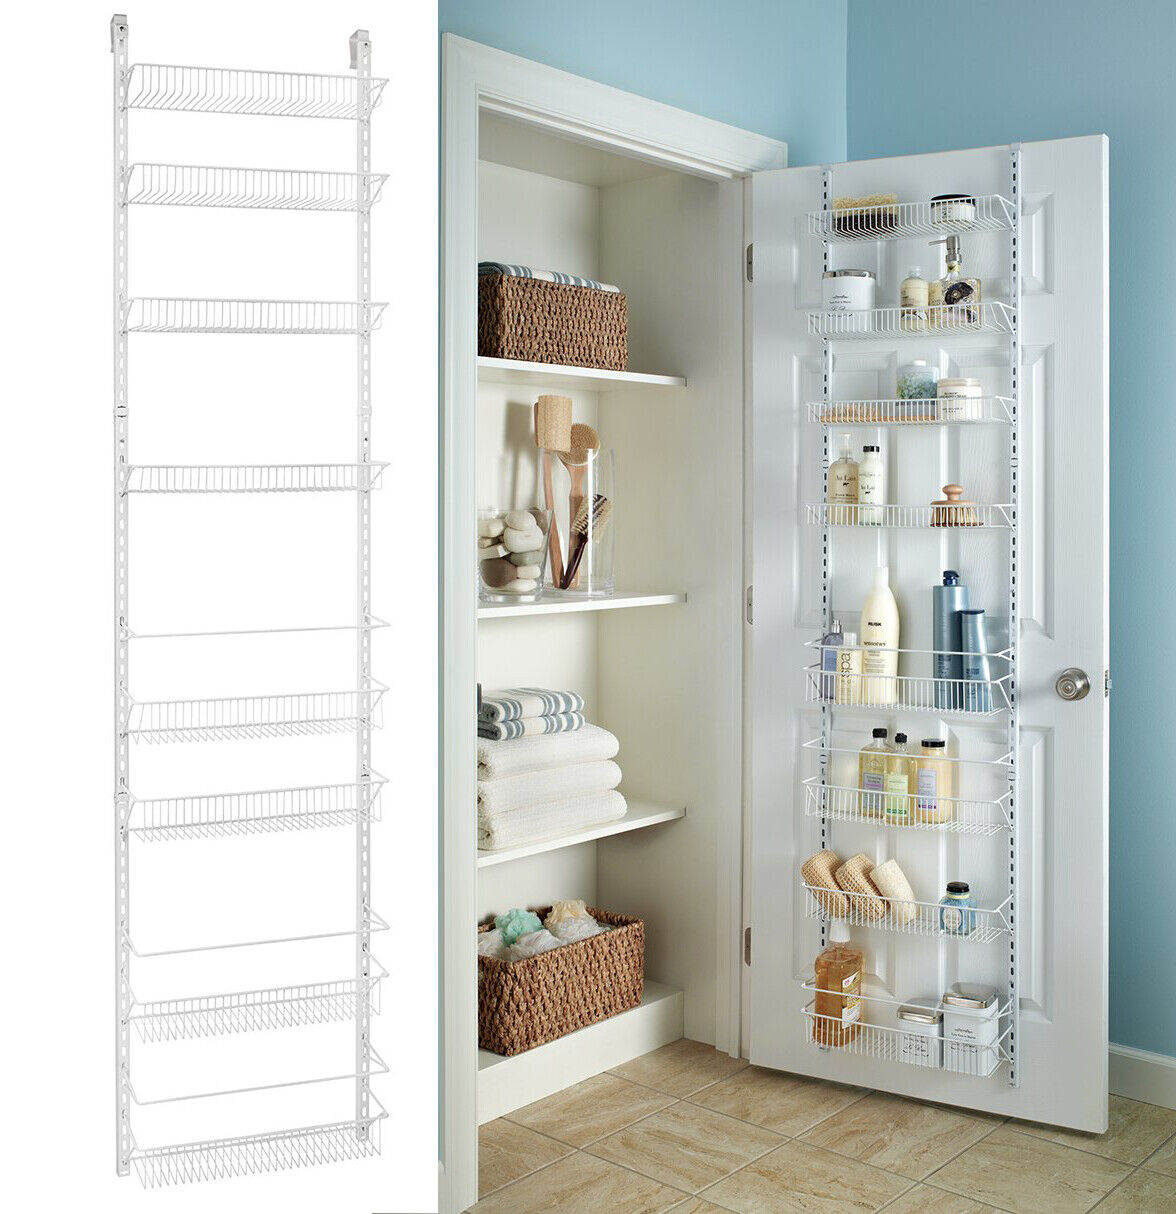 Over The Door Pantry Organizer Kitchen Storage Racks Wall Ho